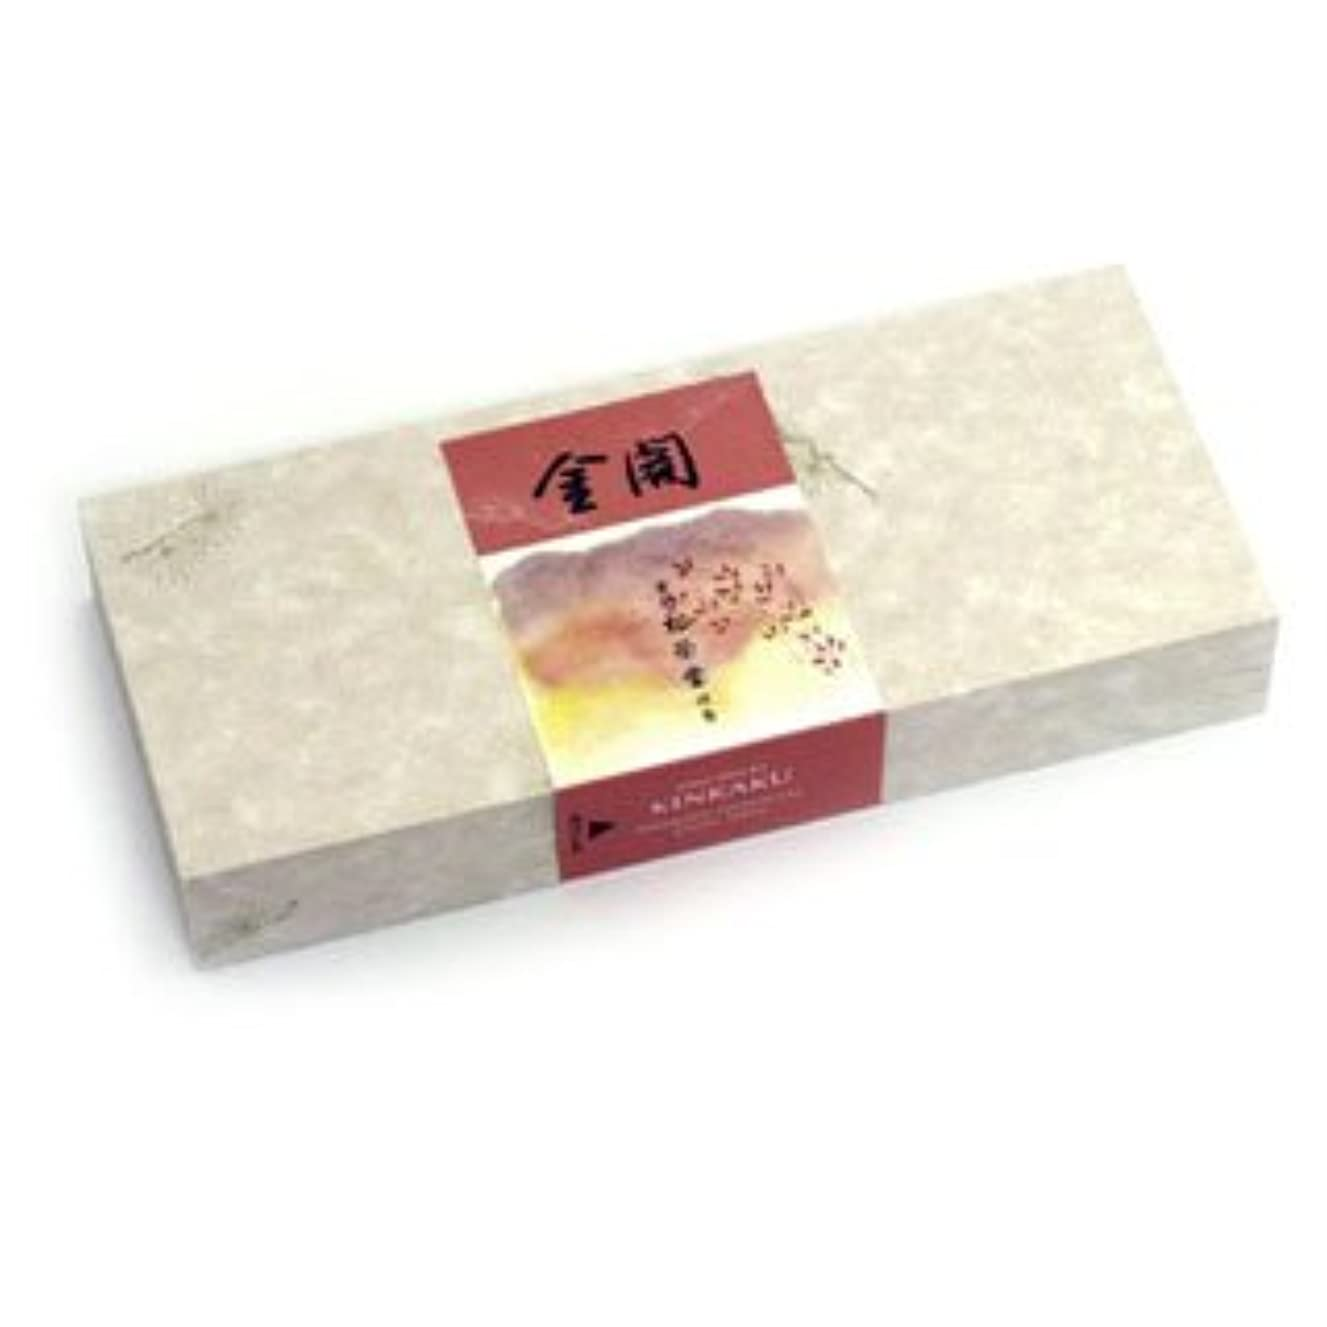 冷酷な免疫する主観的Shoyeido 's Golden Pavilion Incense、150 sticks – kin-kaku